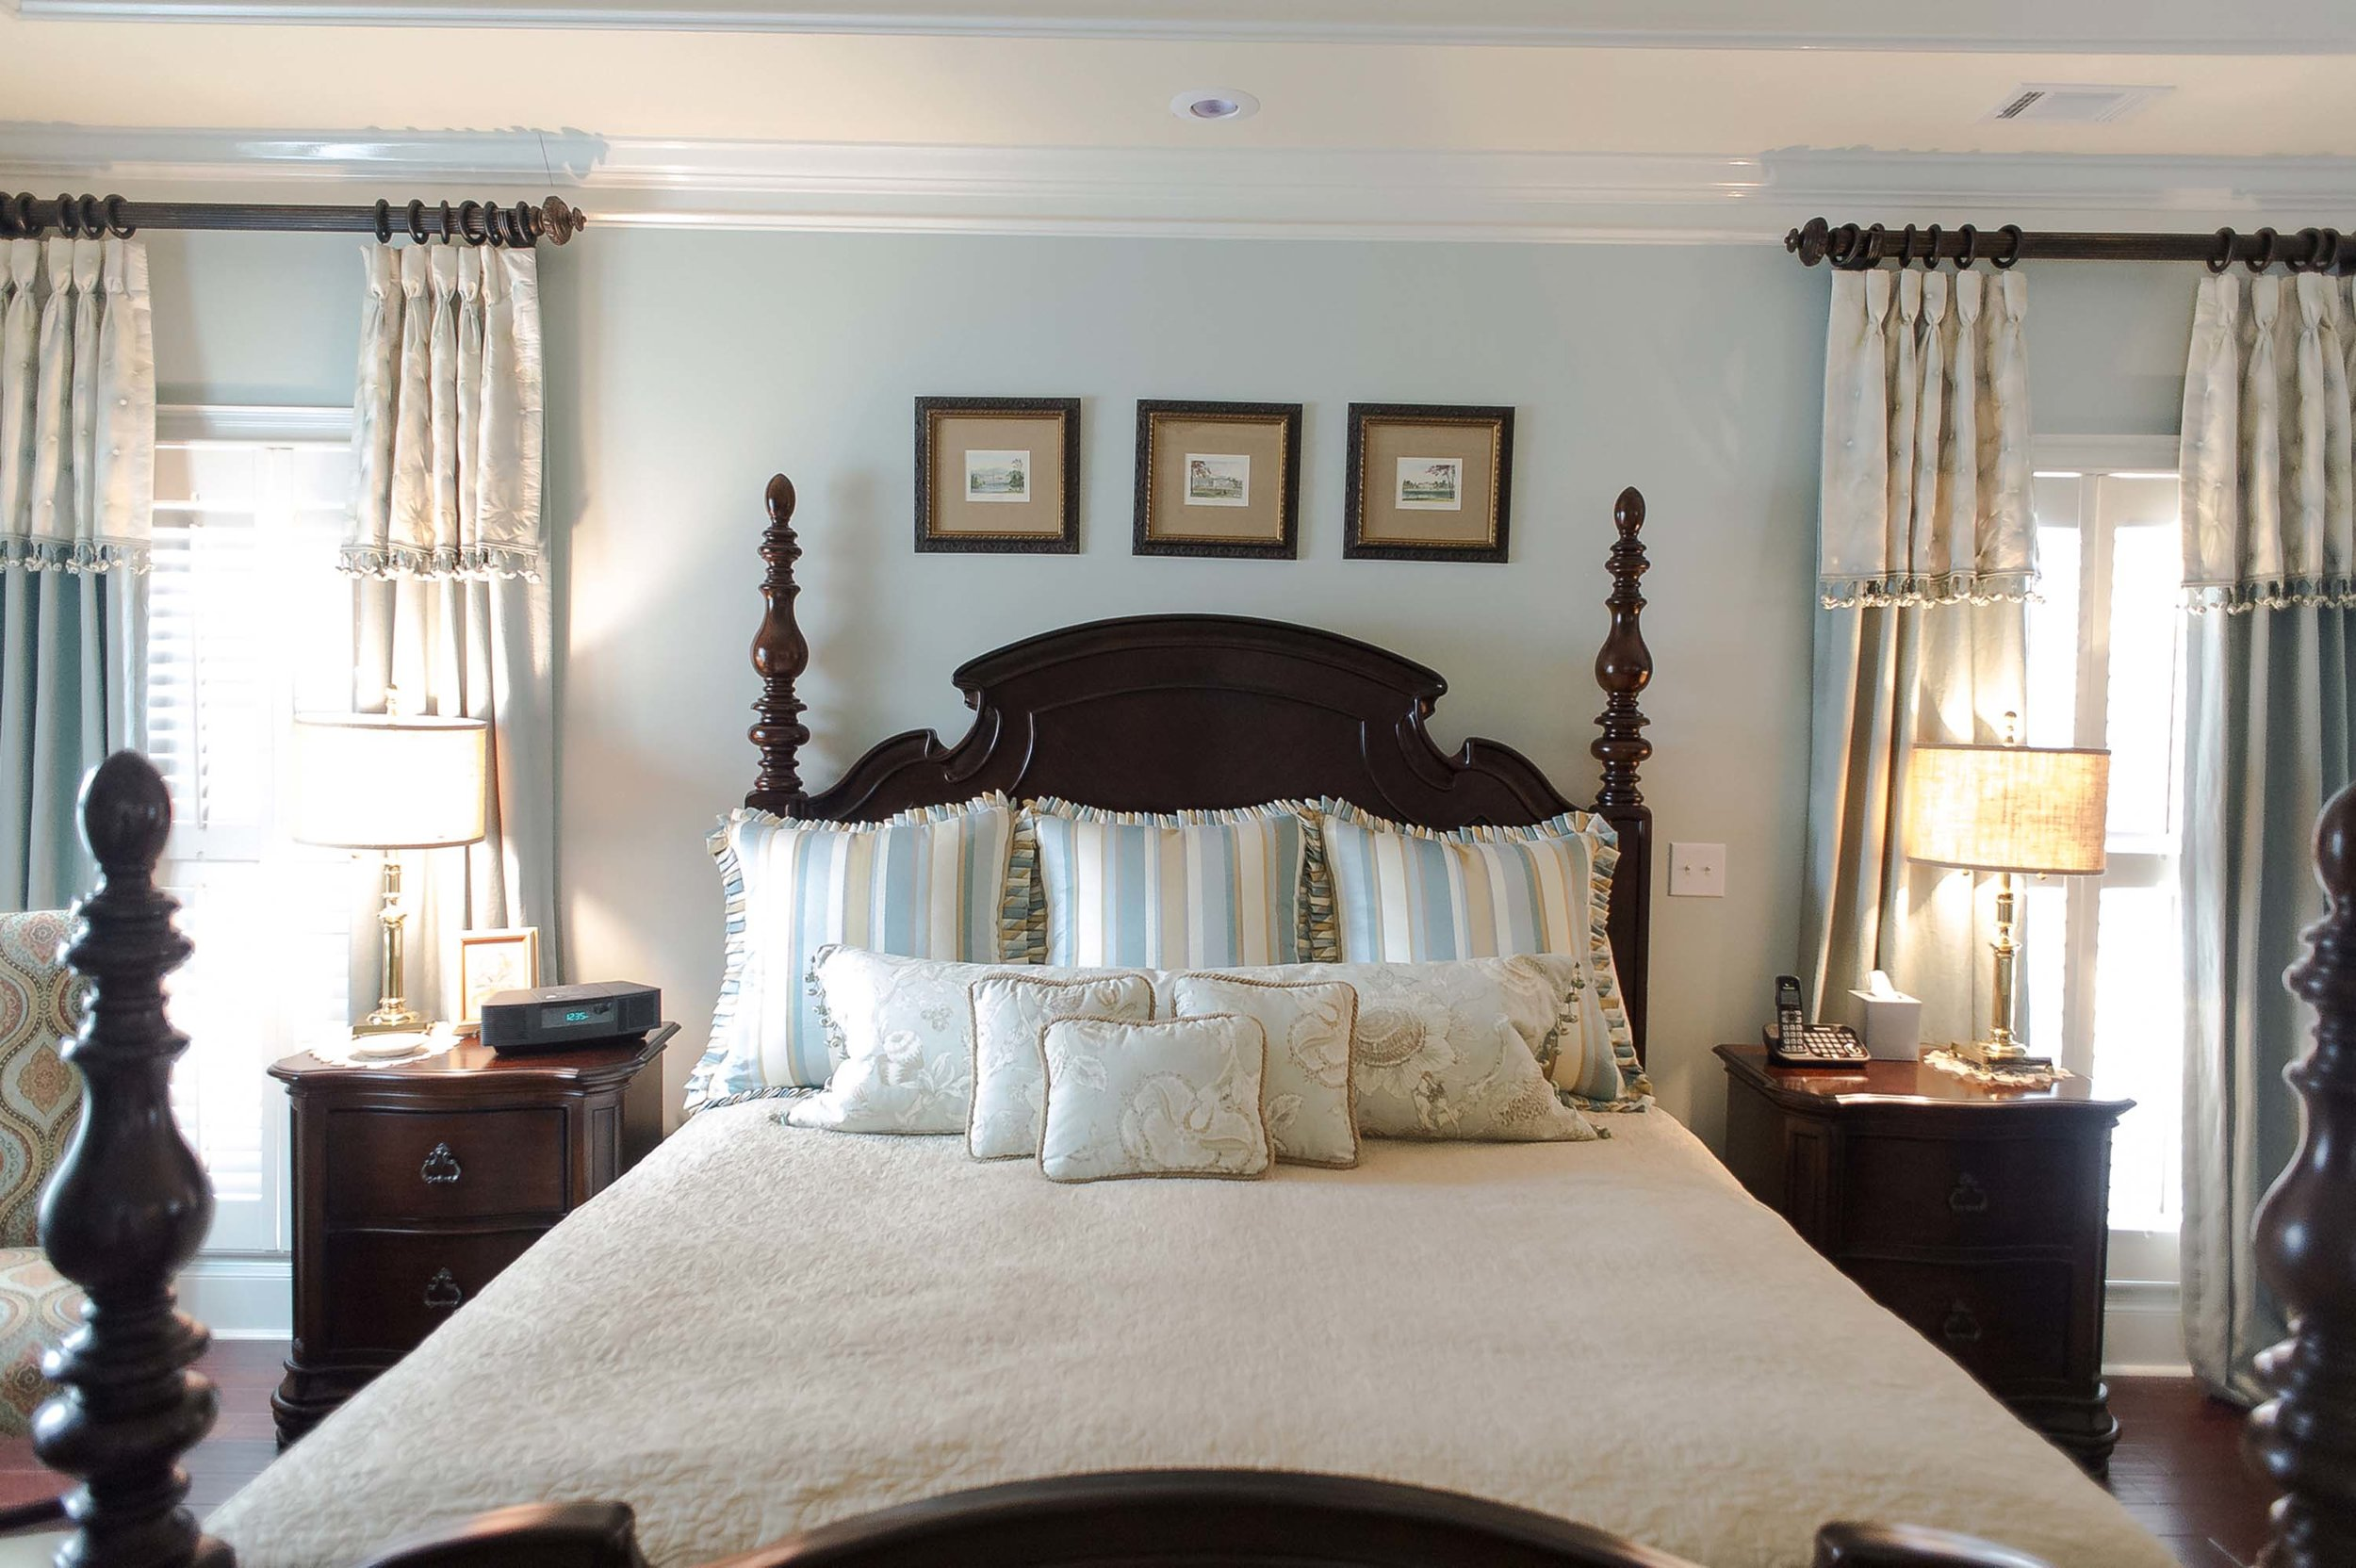 Master Bedroom with Artwork, Pillows, Window Treatments & Lamps